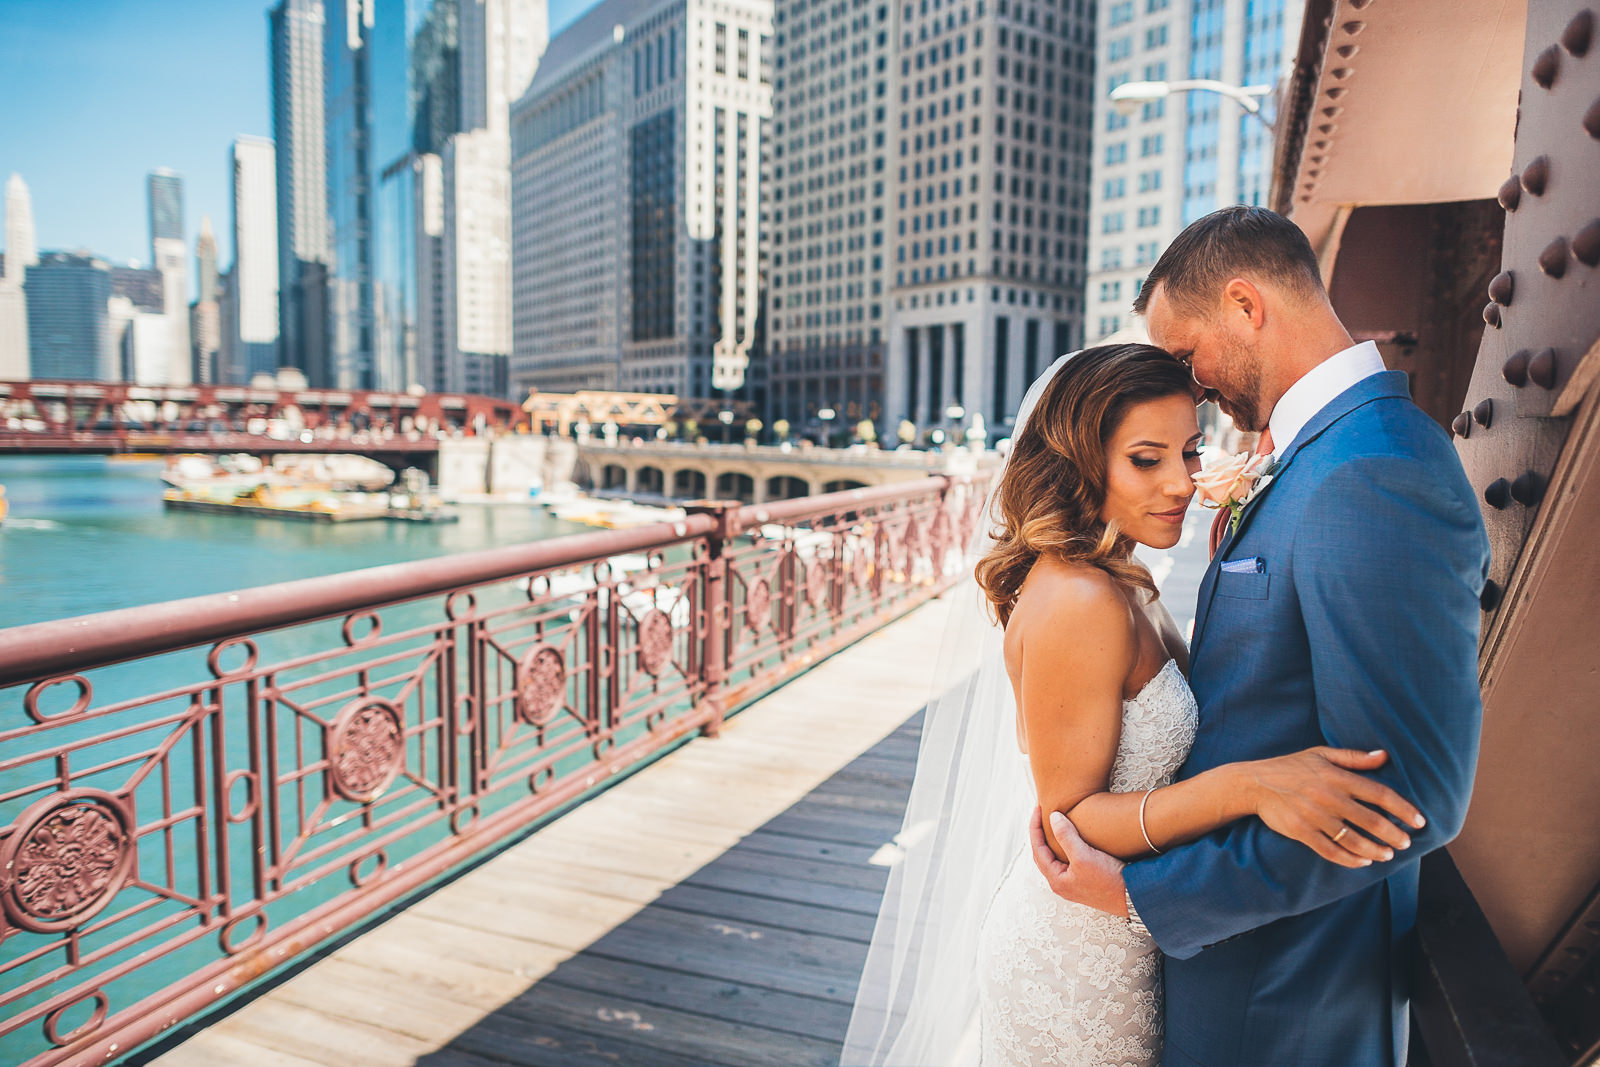 33 bride and groom on the bridge - Natalie + Alan // Chicago Wedding Photographer at Cafe Brauer